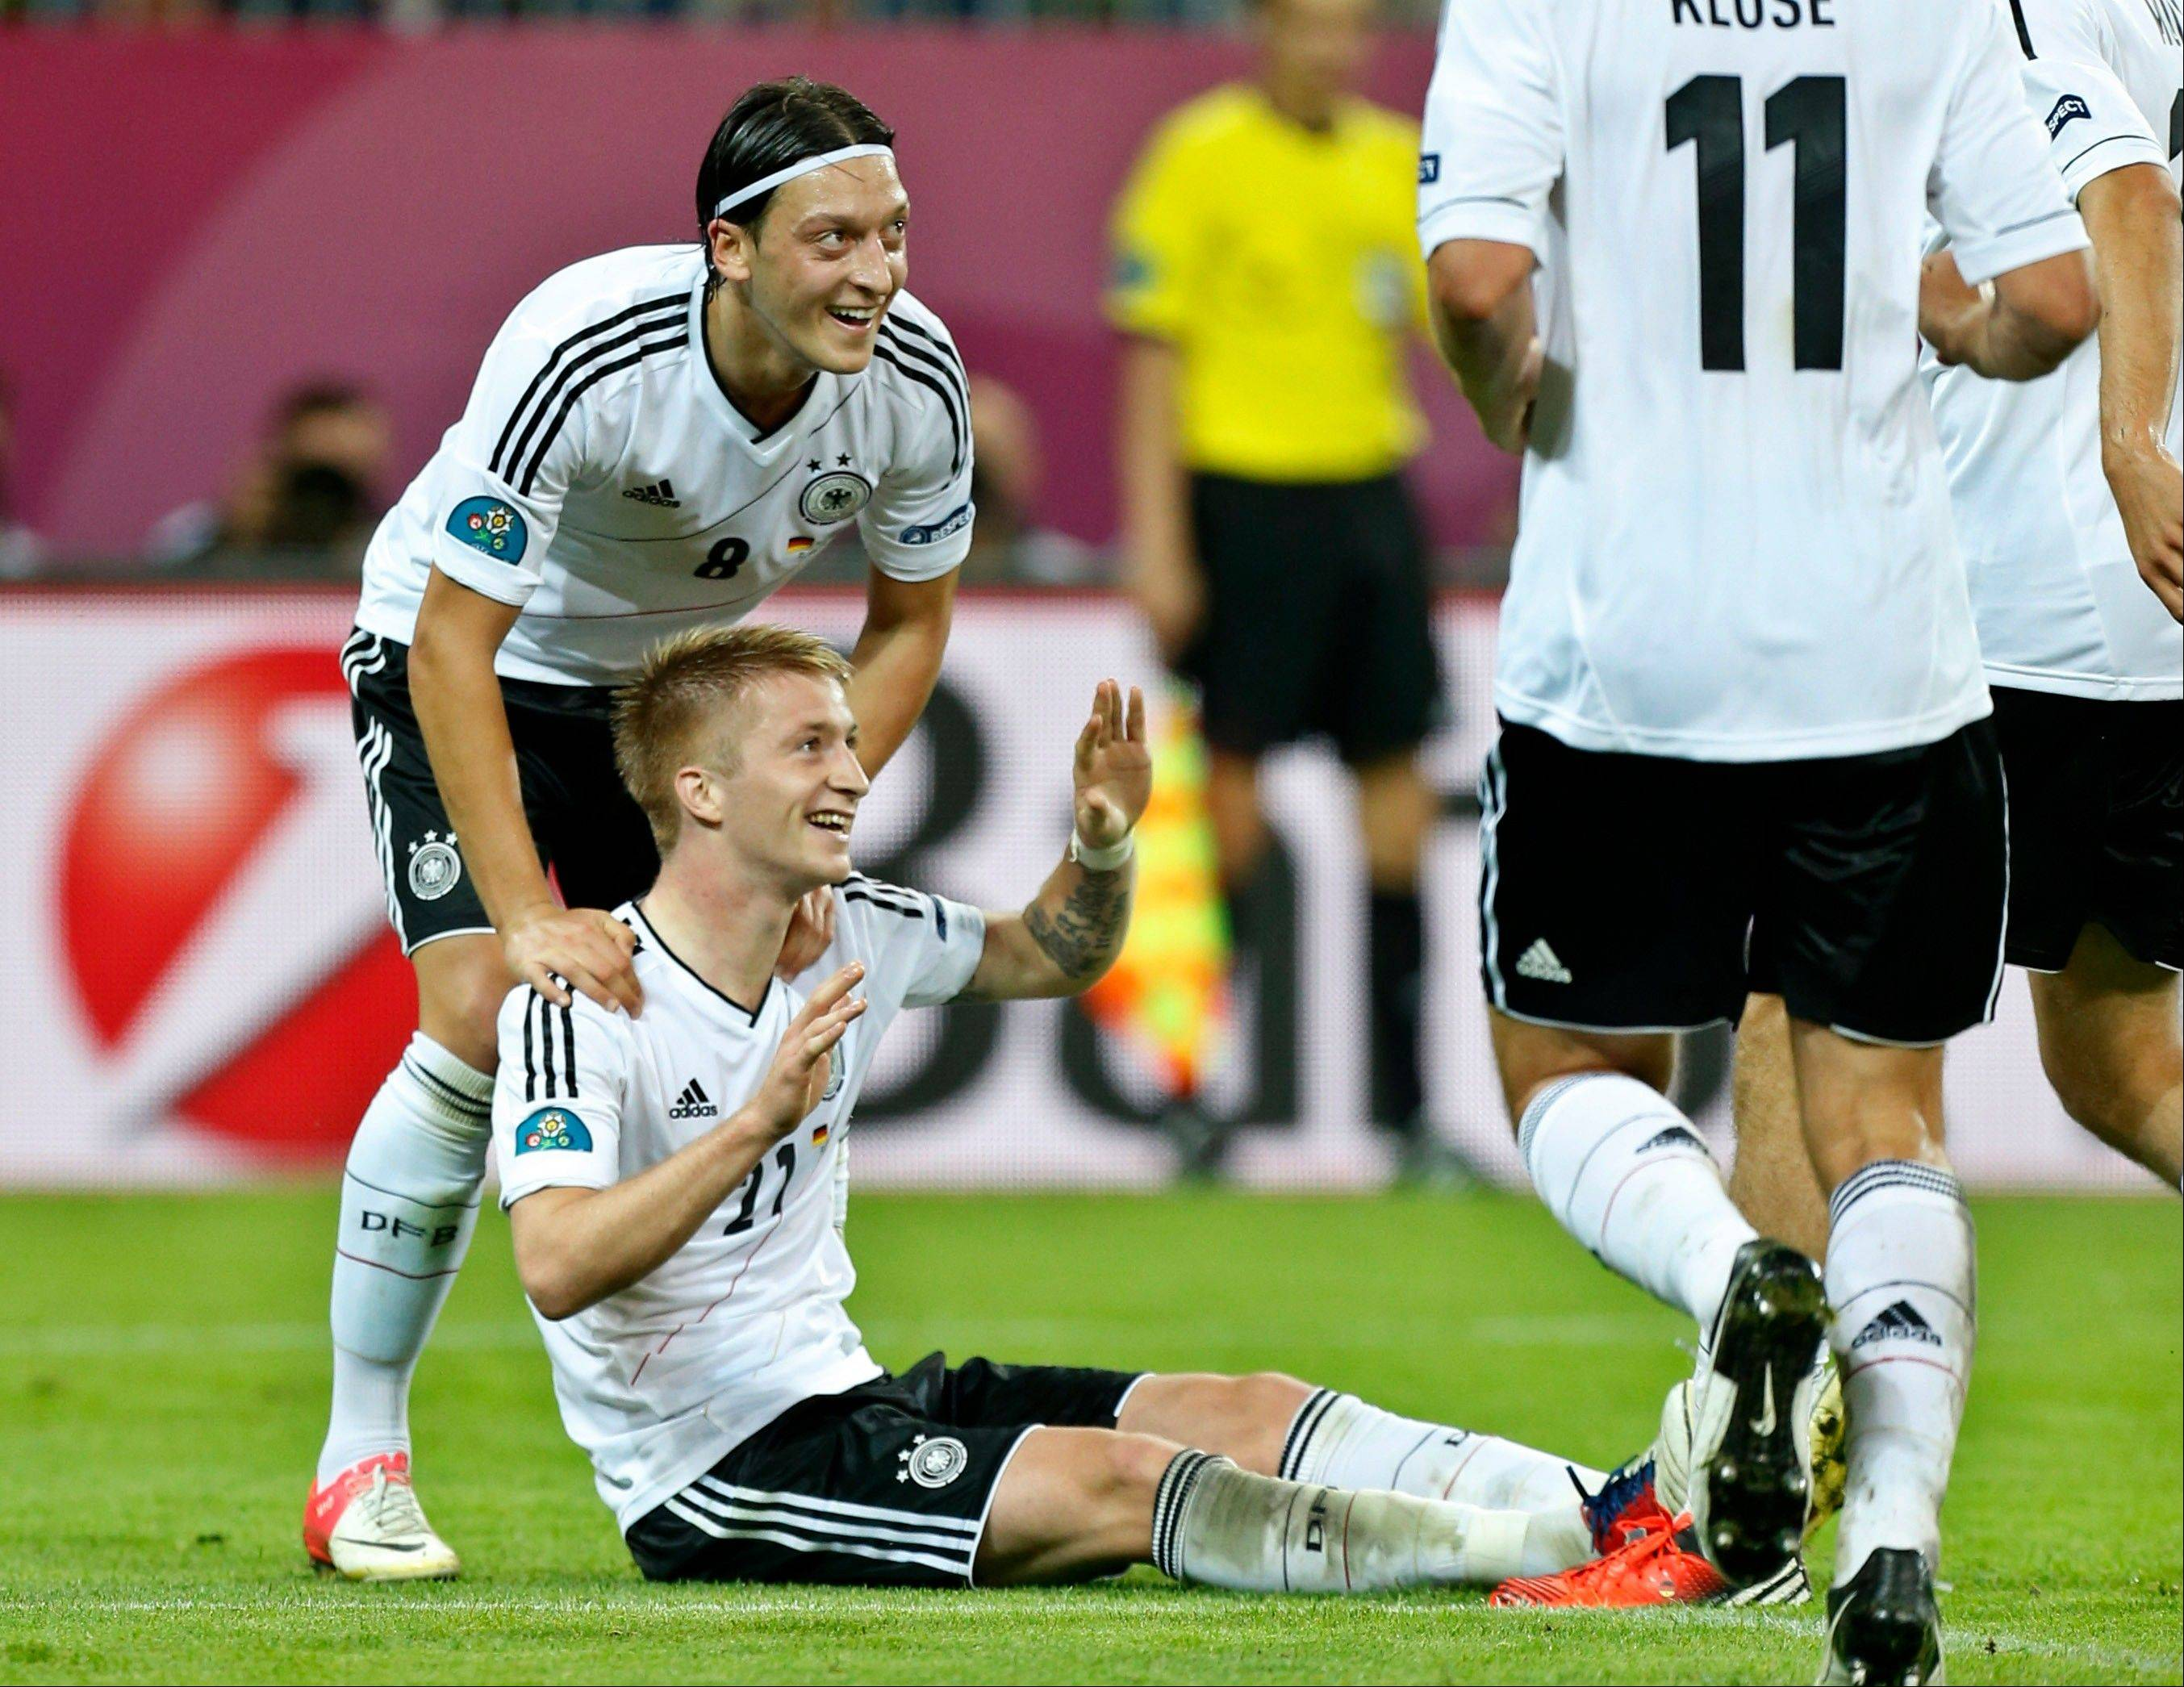 Germany's Marco Reus reacts Friday after he scored his team's fourth goal during a Euro 2012 quarterfinal match between Germany and Greece in Gdansk, Poland.